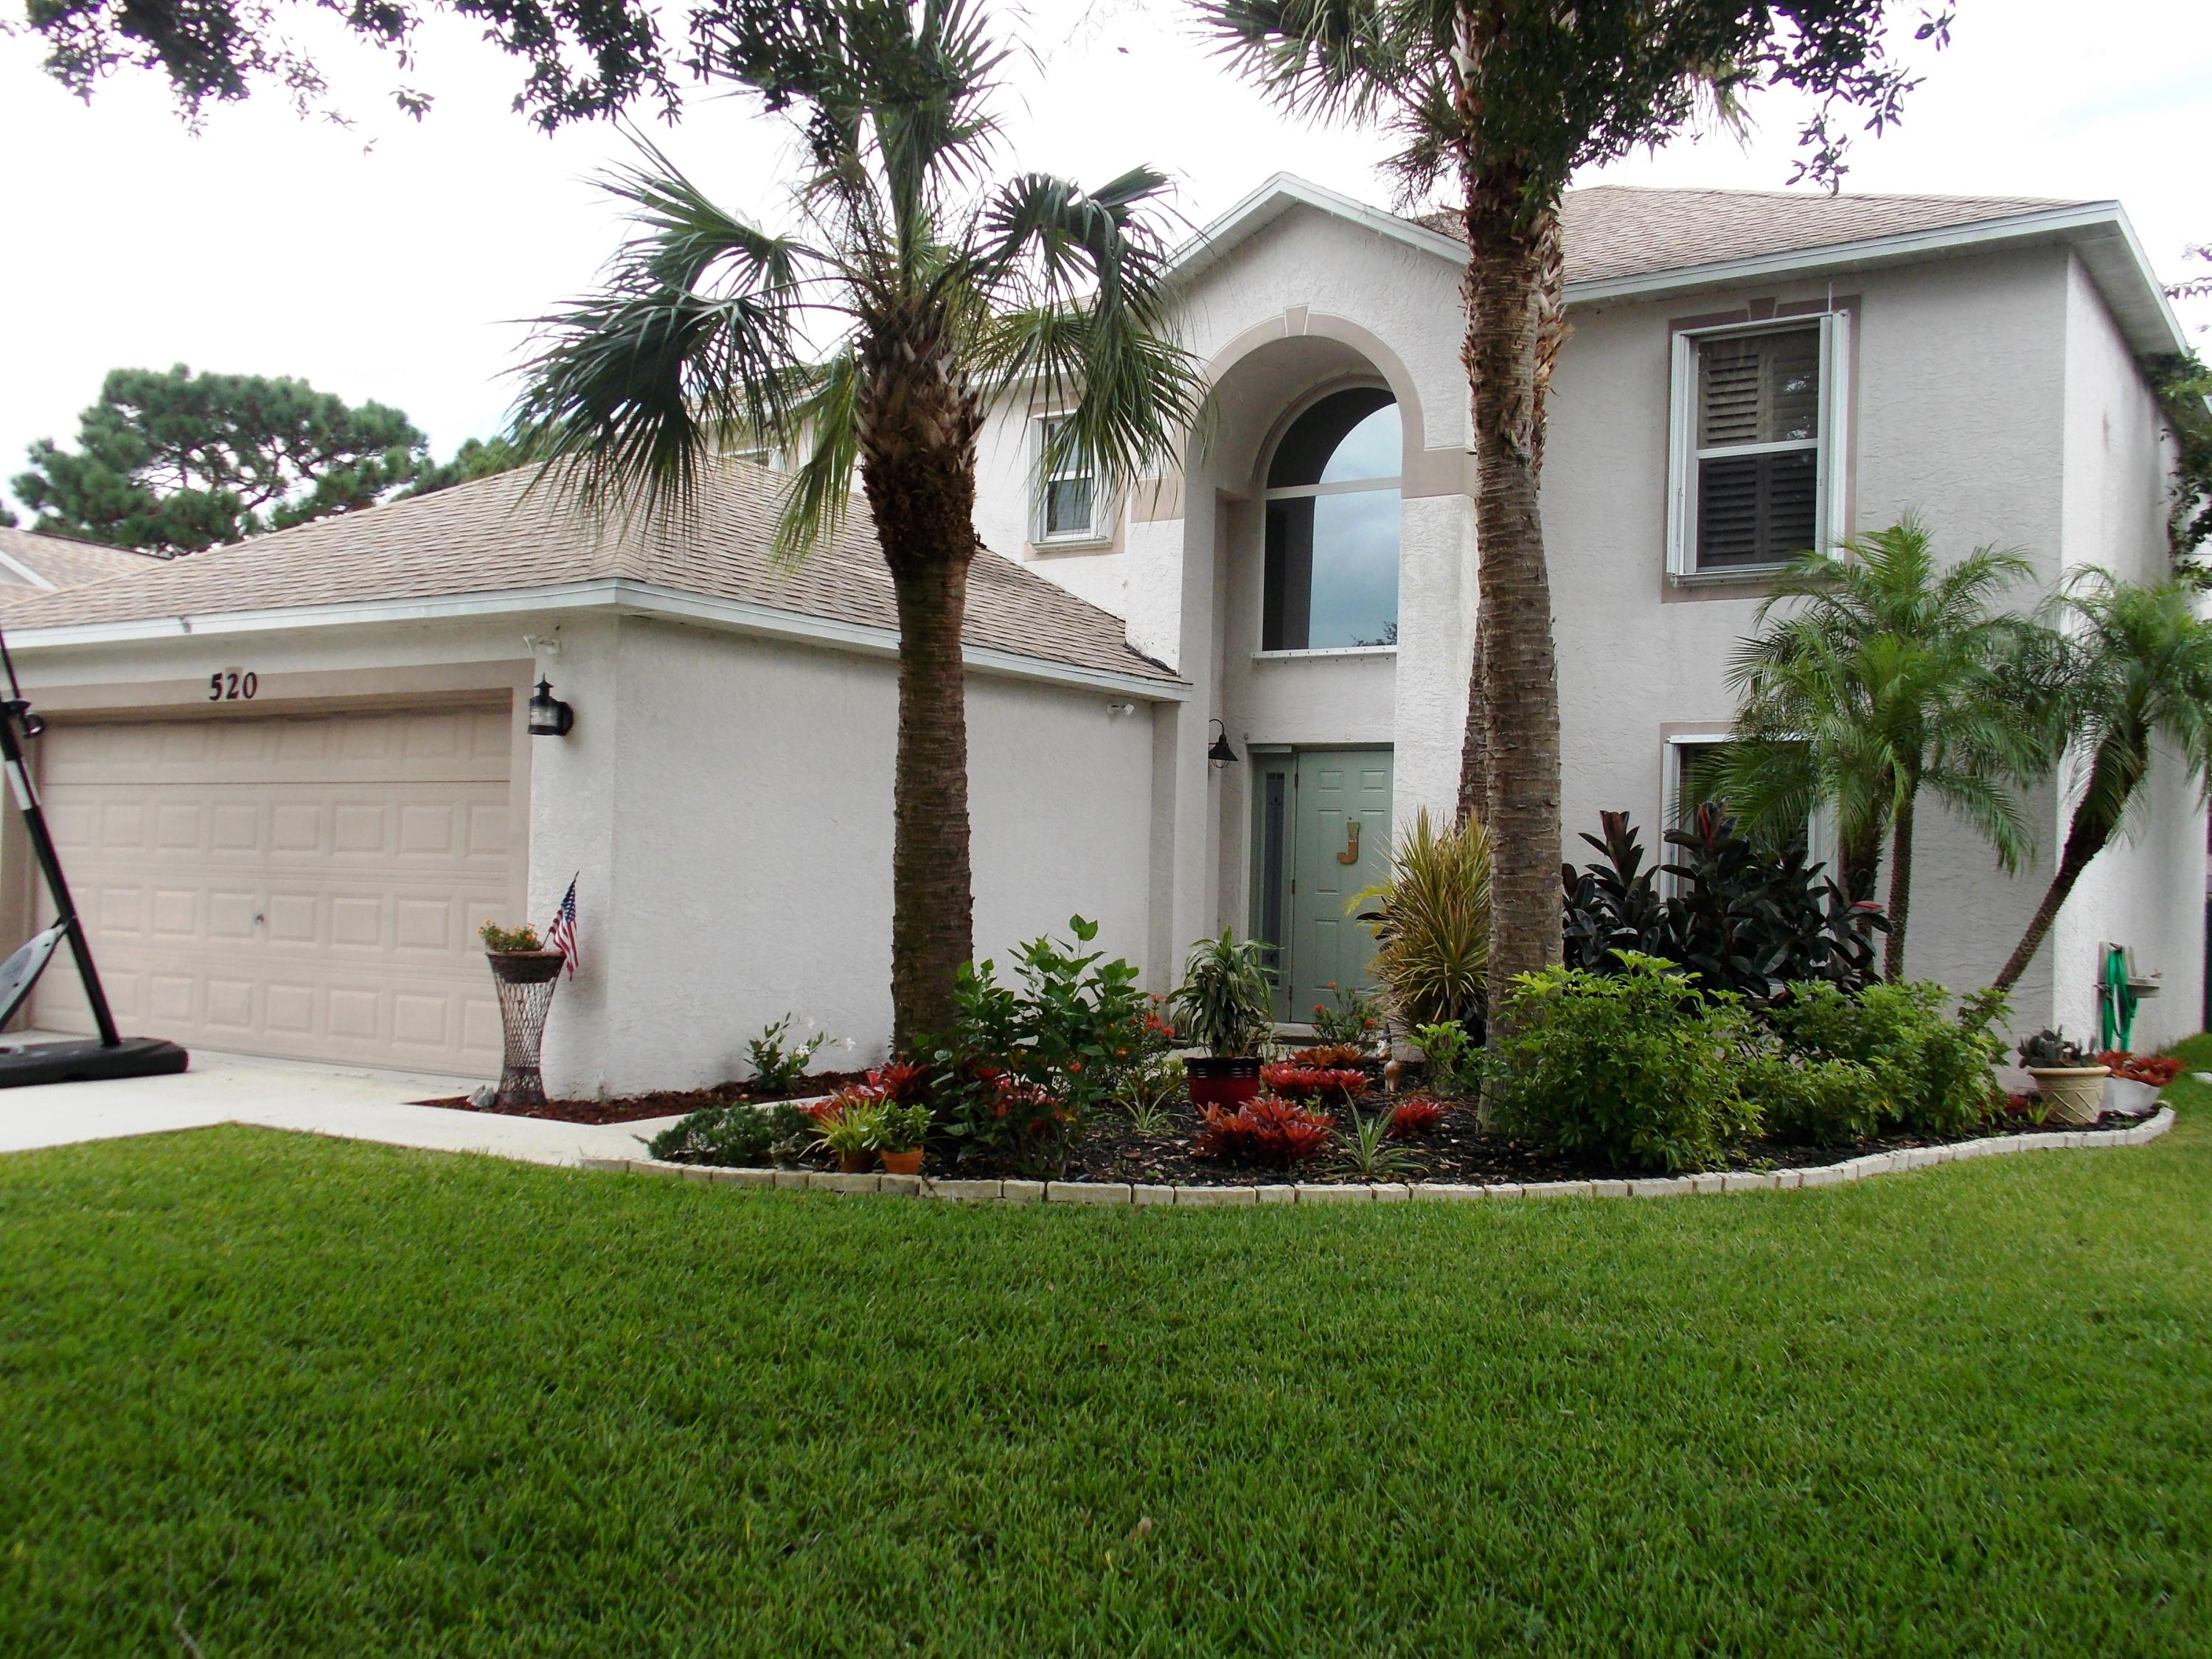 Photo of home for sale at 520 Deer Run SW, Port Saint Lucie FL